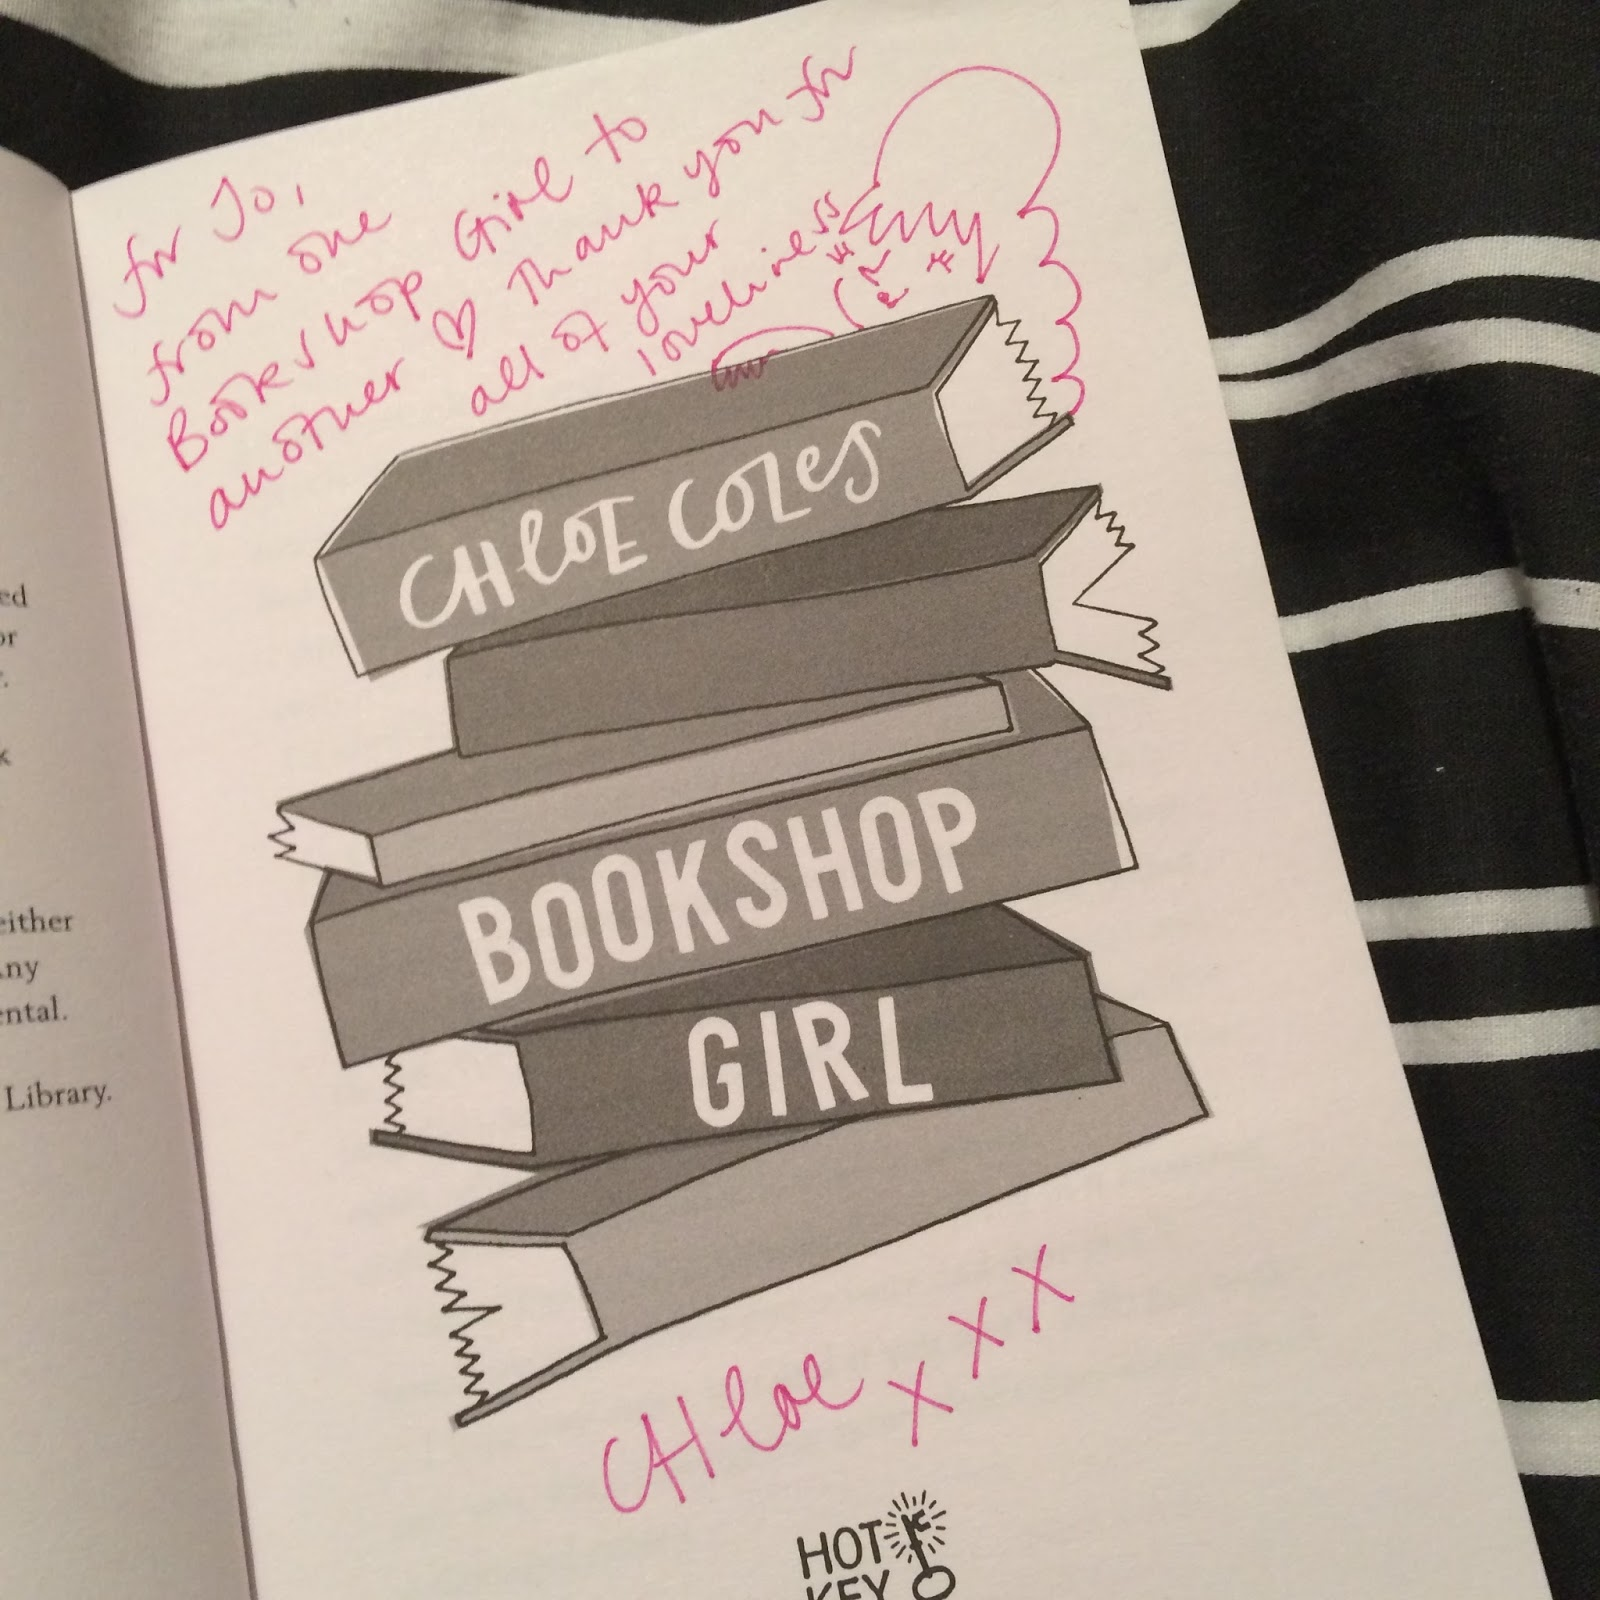 Signed title page of Bookshop Girl by Chloe Coles